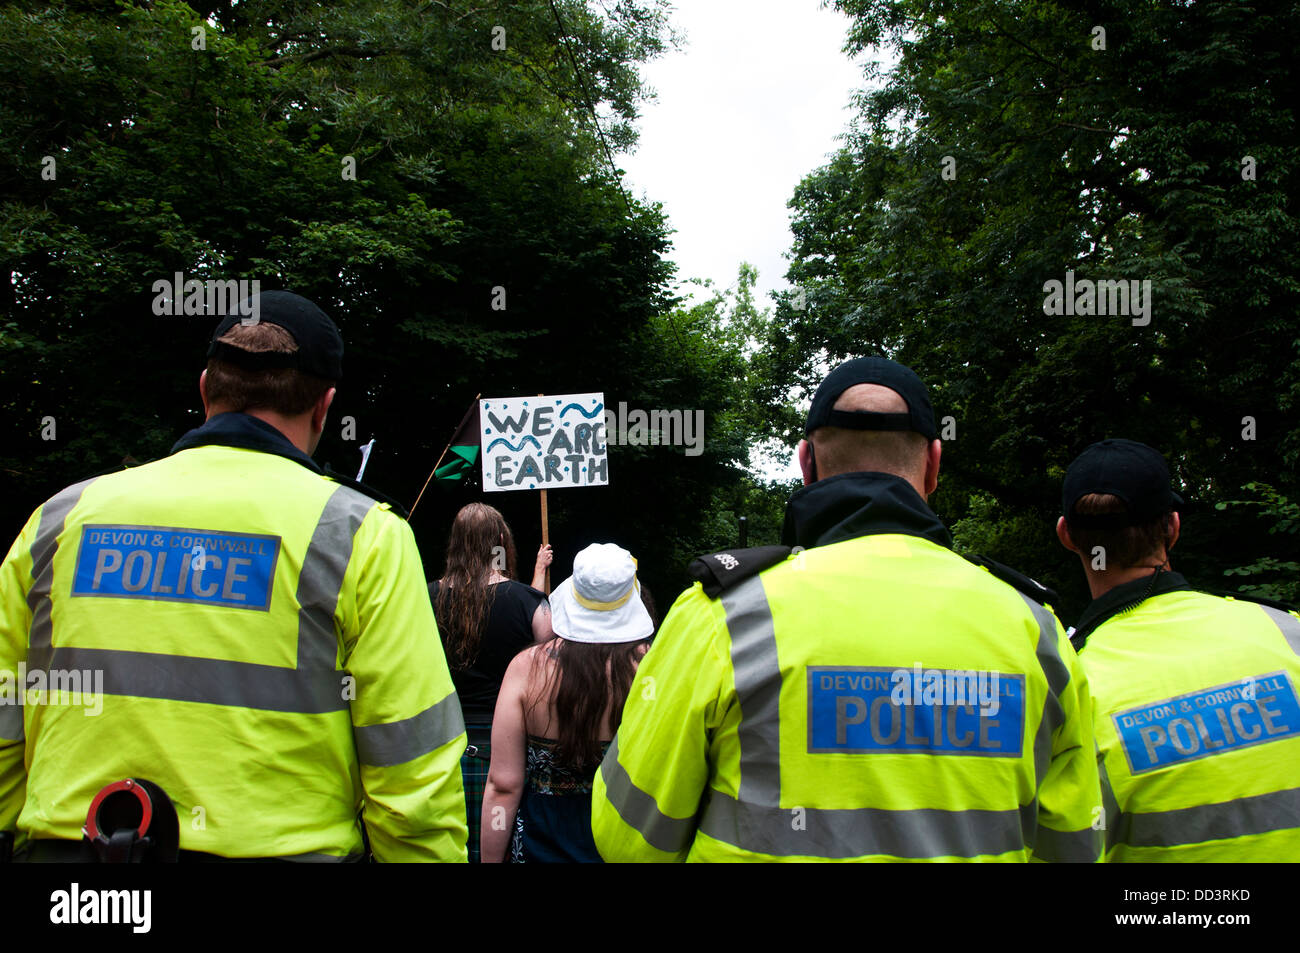 Balcombe protest against fracking. A man holds a placard saying 'We are earth' in front of a line of police. - Stock Image